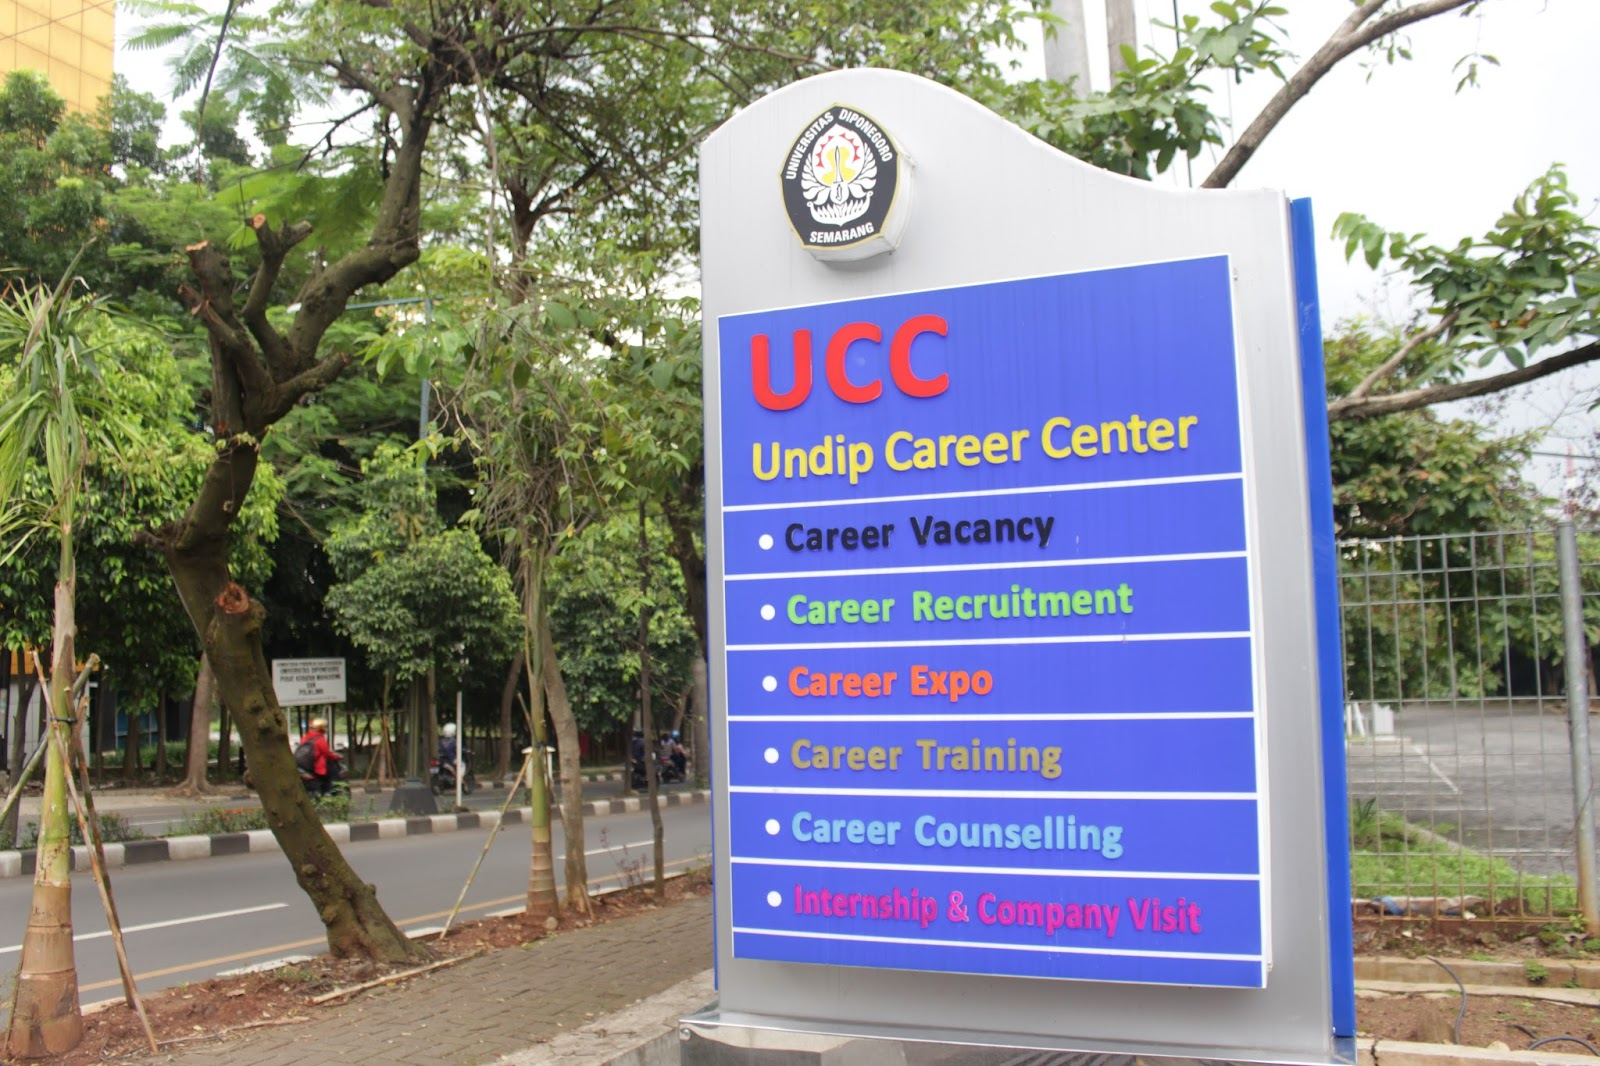 Halaman depan Undip Career Center